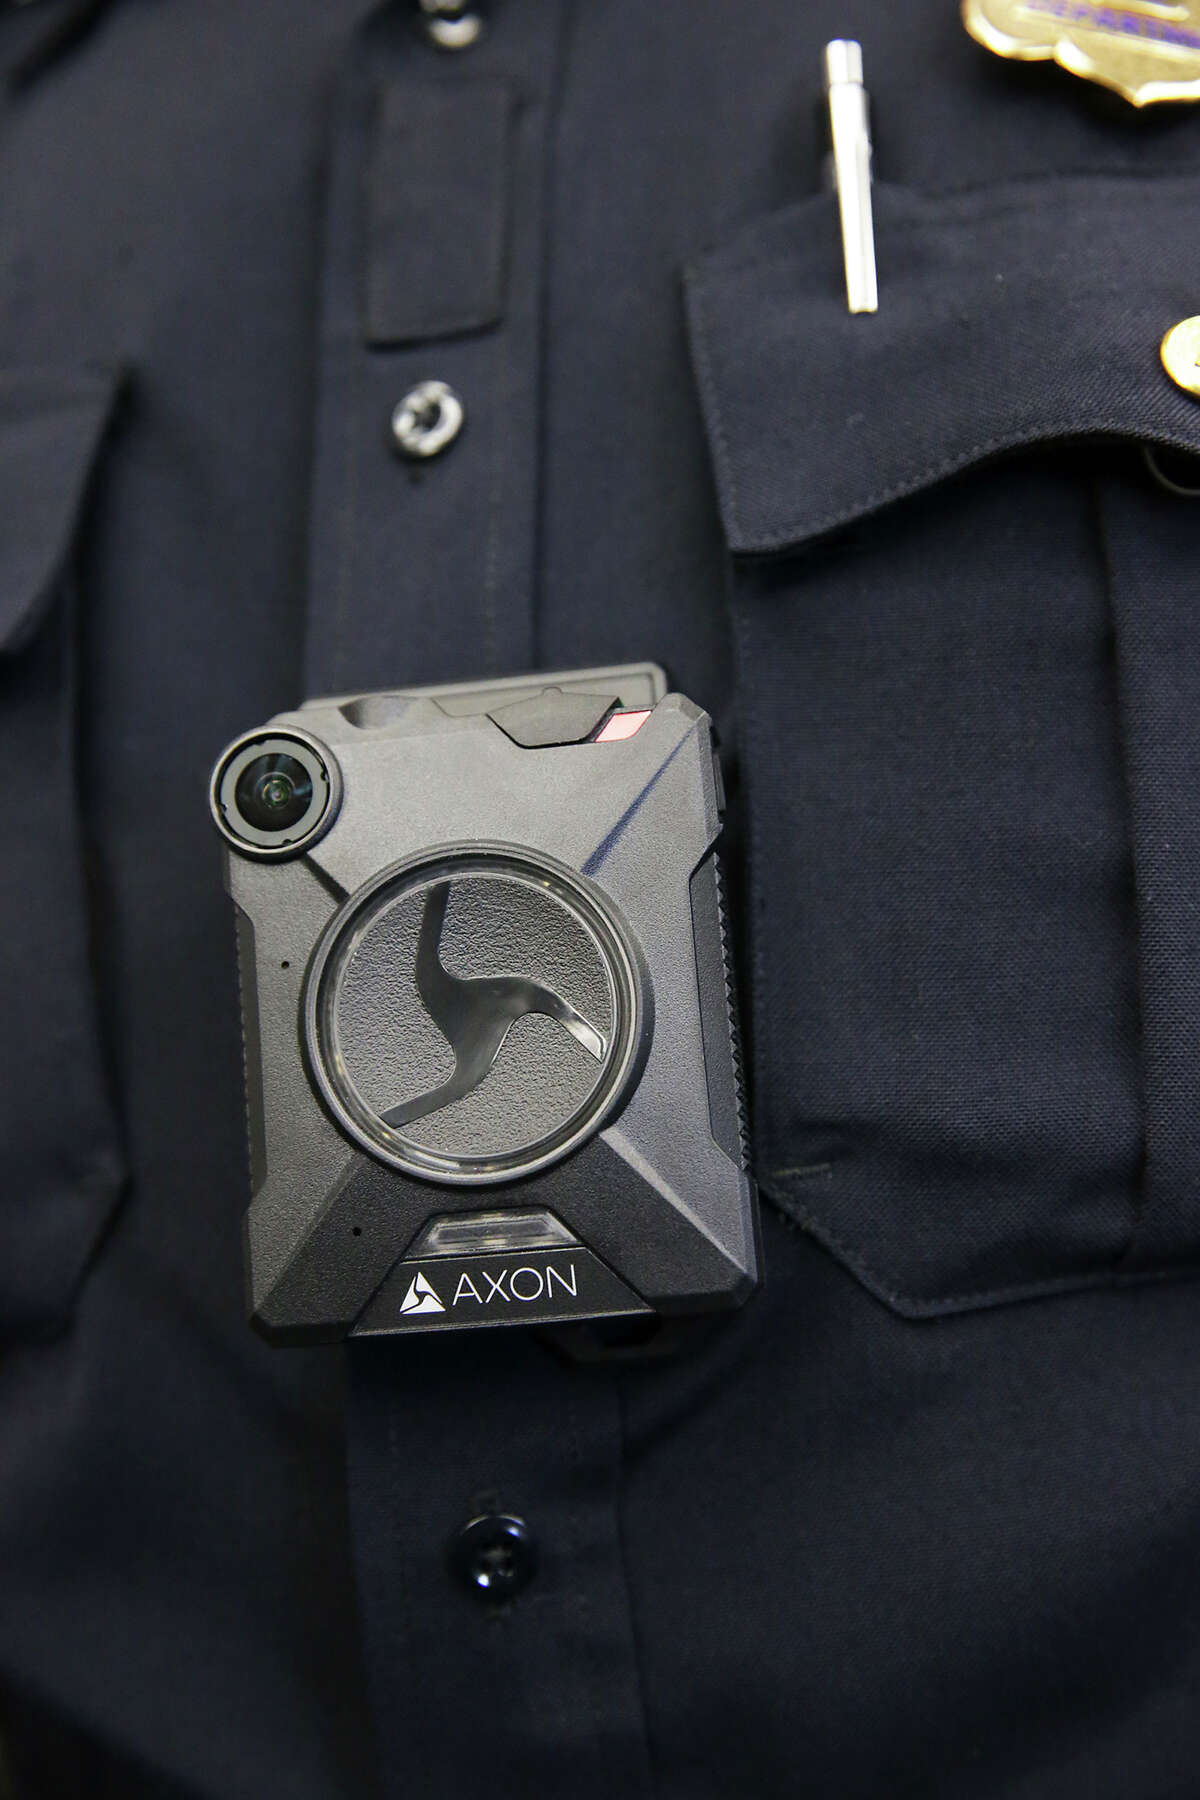 Sgt. Adam Zeldes displays the equipment as Chief William McManus and the SAPD reveal the new body camera to be worn by its officers during a demonstration session Wednesday morning at the Police Academy on February 17, 2016.